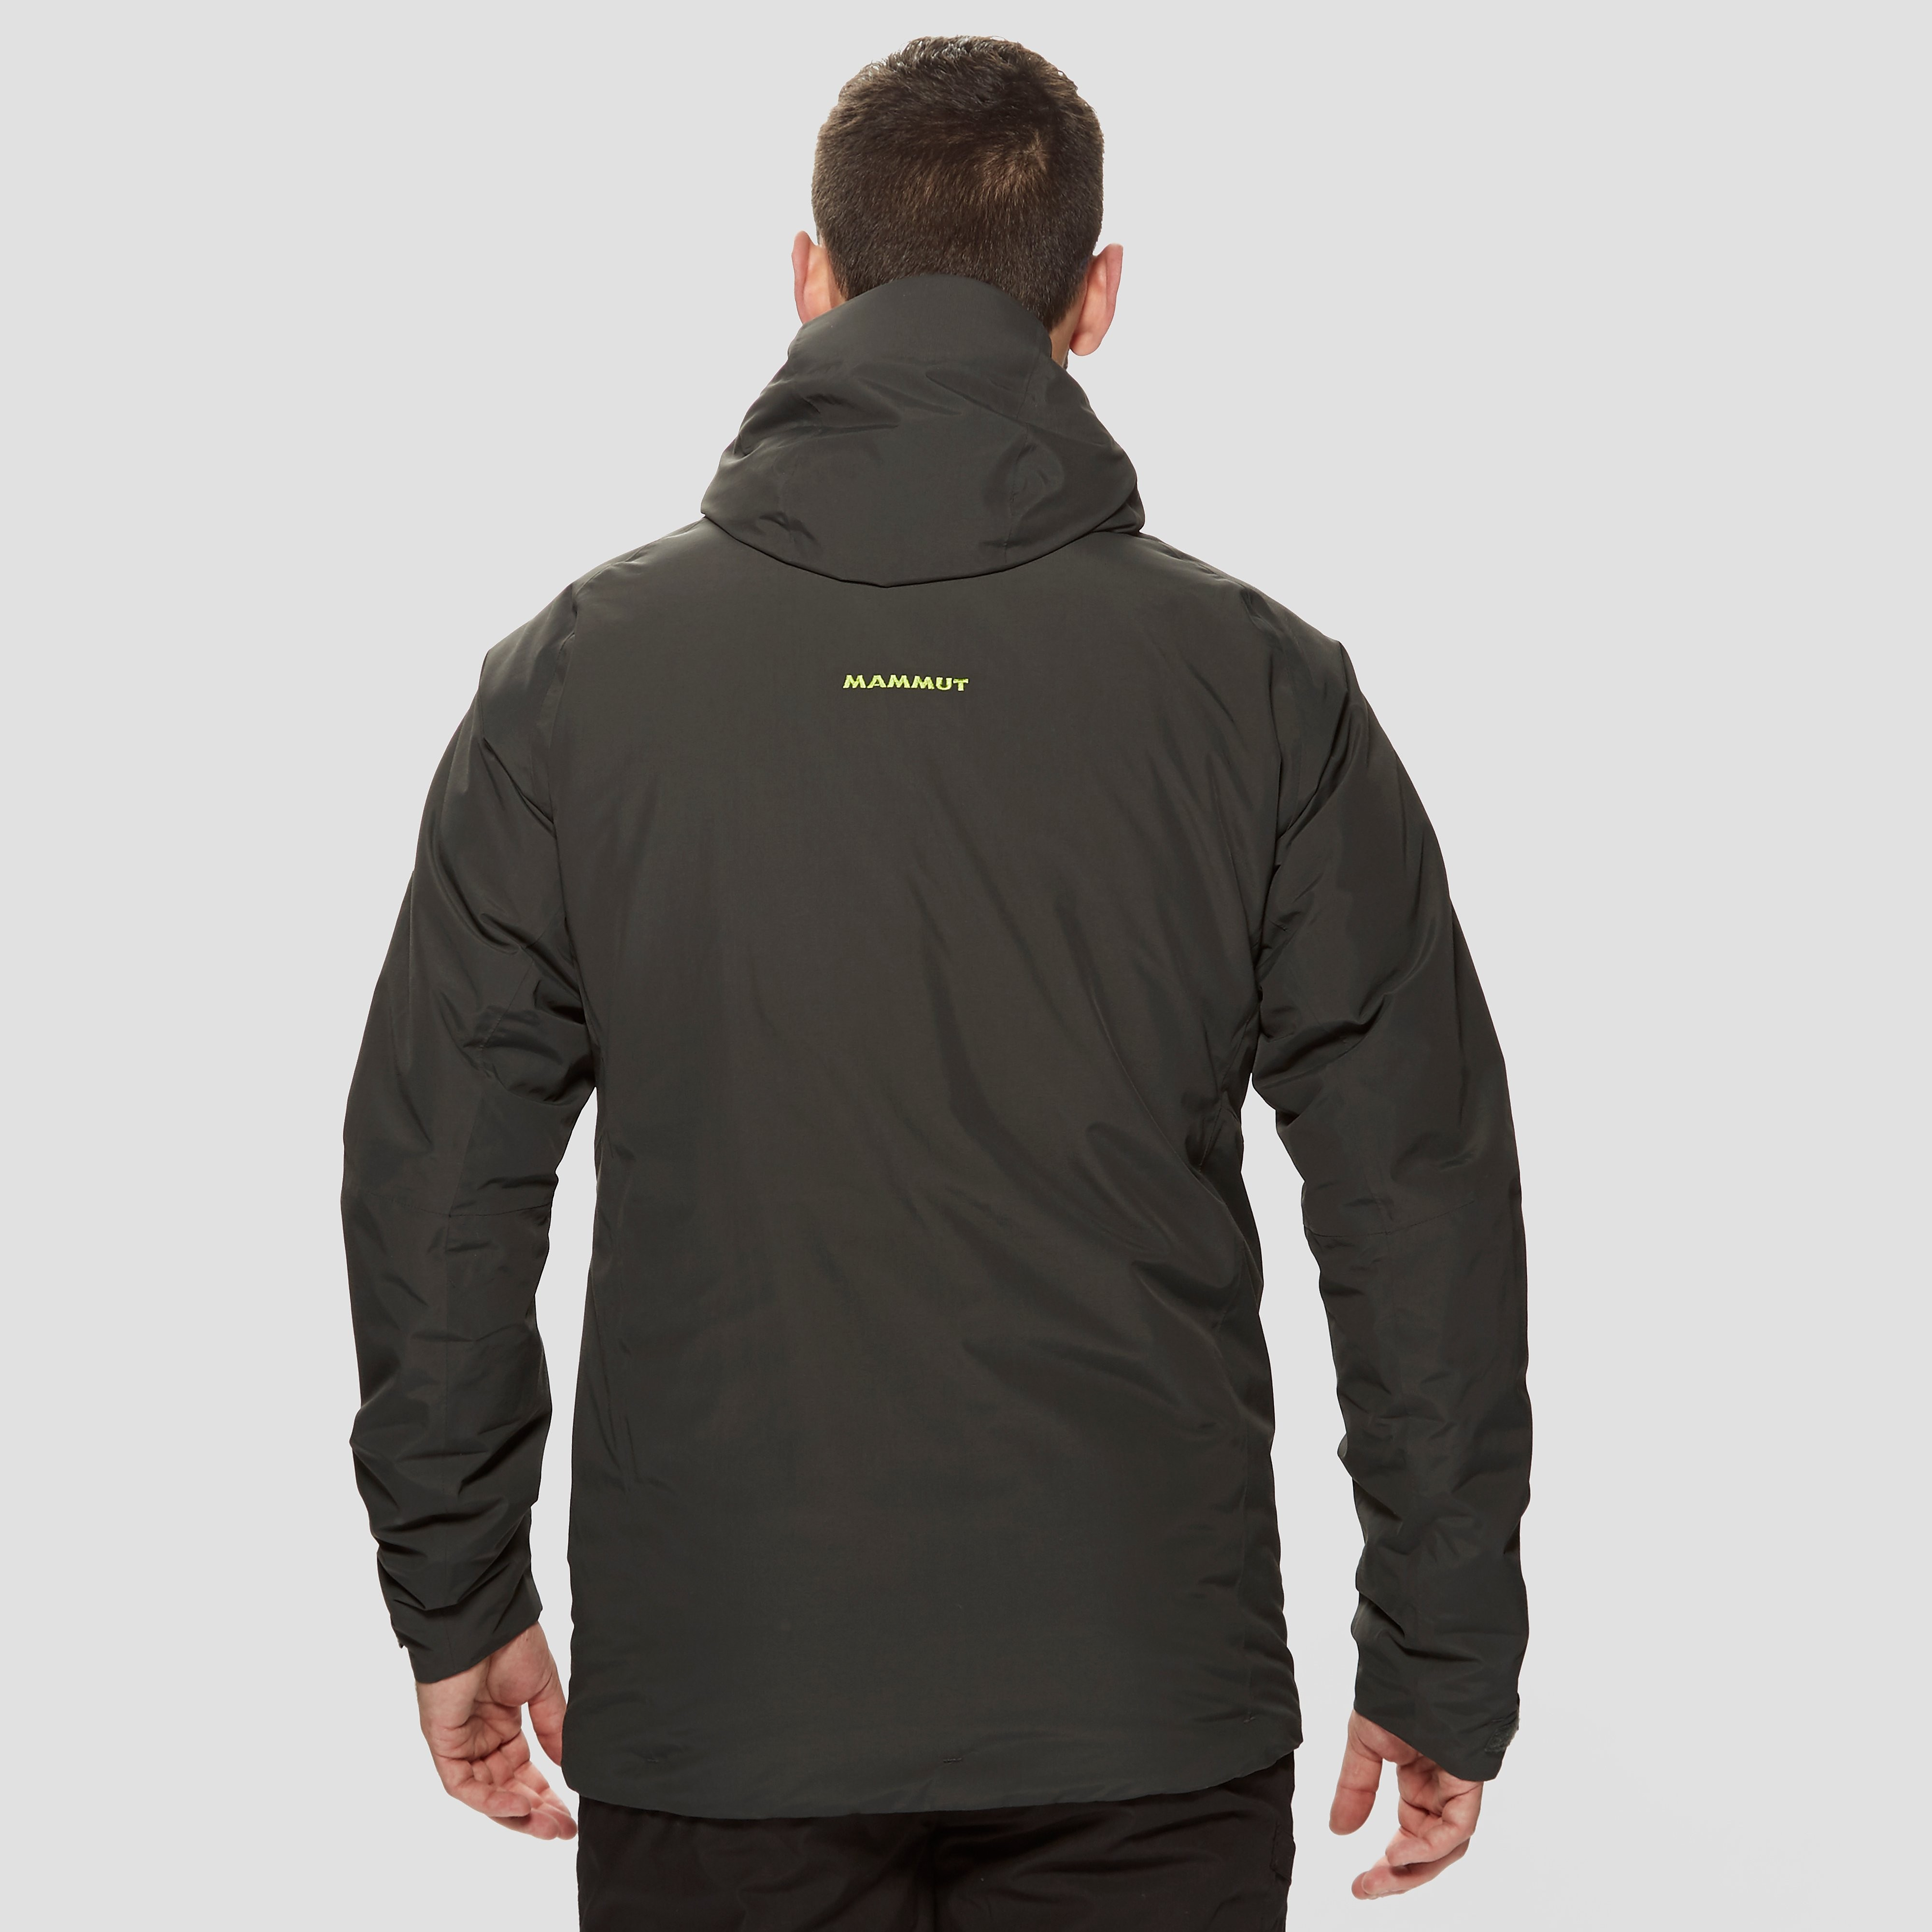 Mammut Men's Runbold Guide Jacket